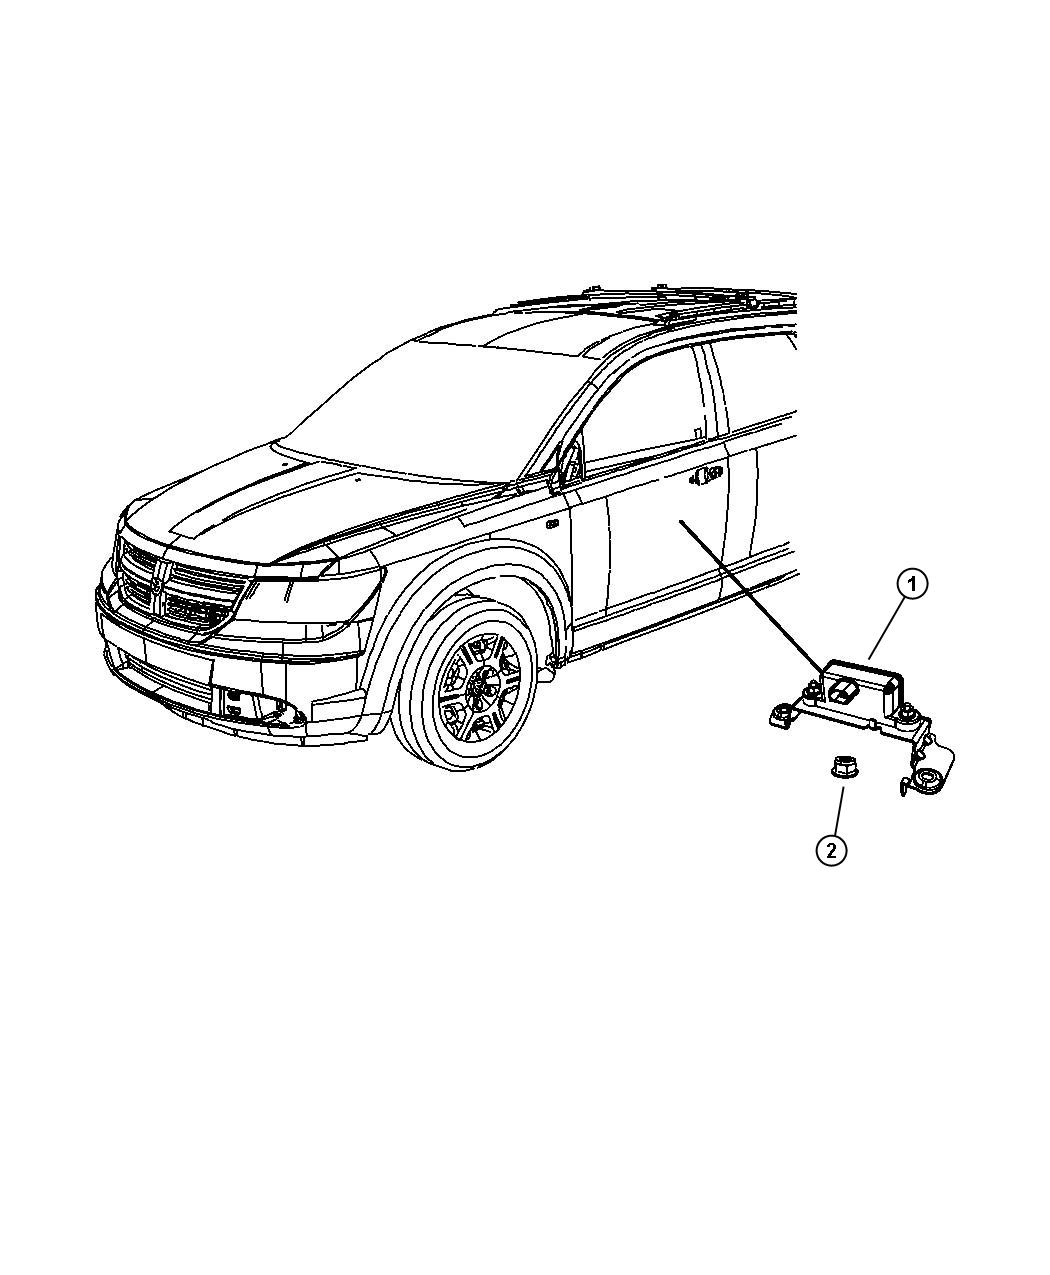 2009 Dodge Journey Sensor. Dynamics. Used for: lateral